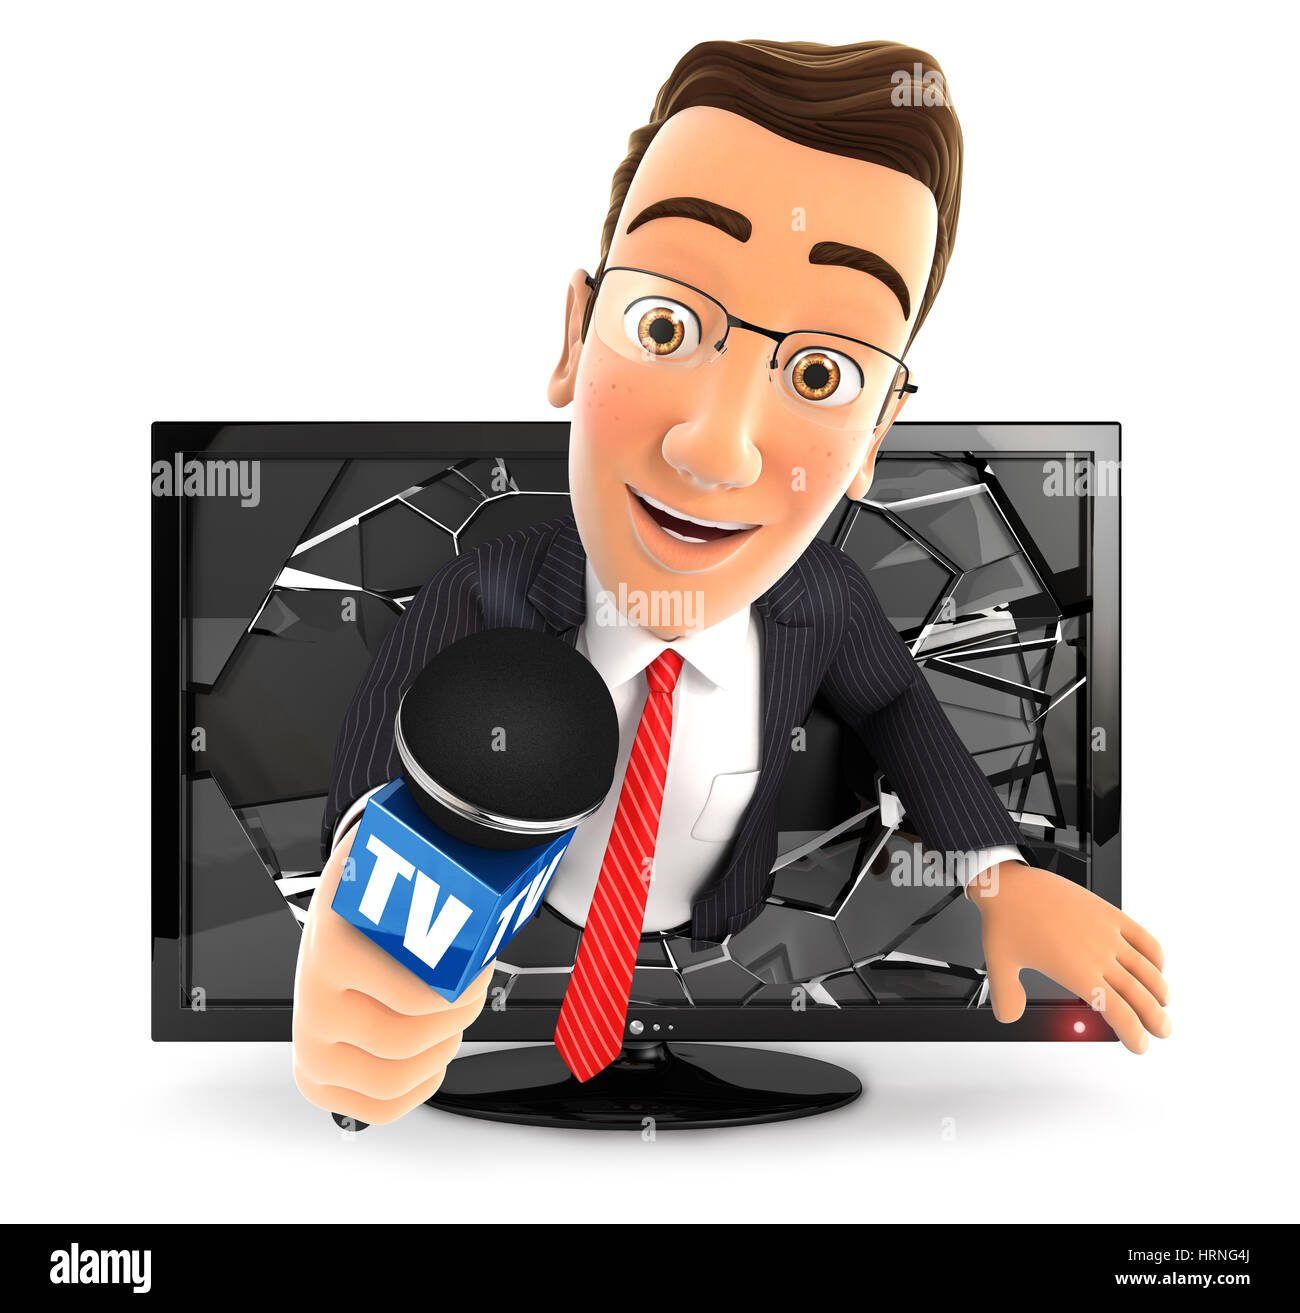 3d businessman with microphone coming out of television, illustration with isolated white background Stock Photo